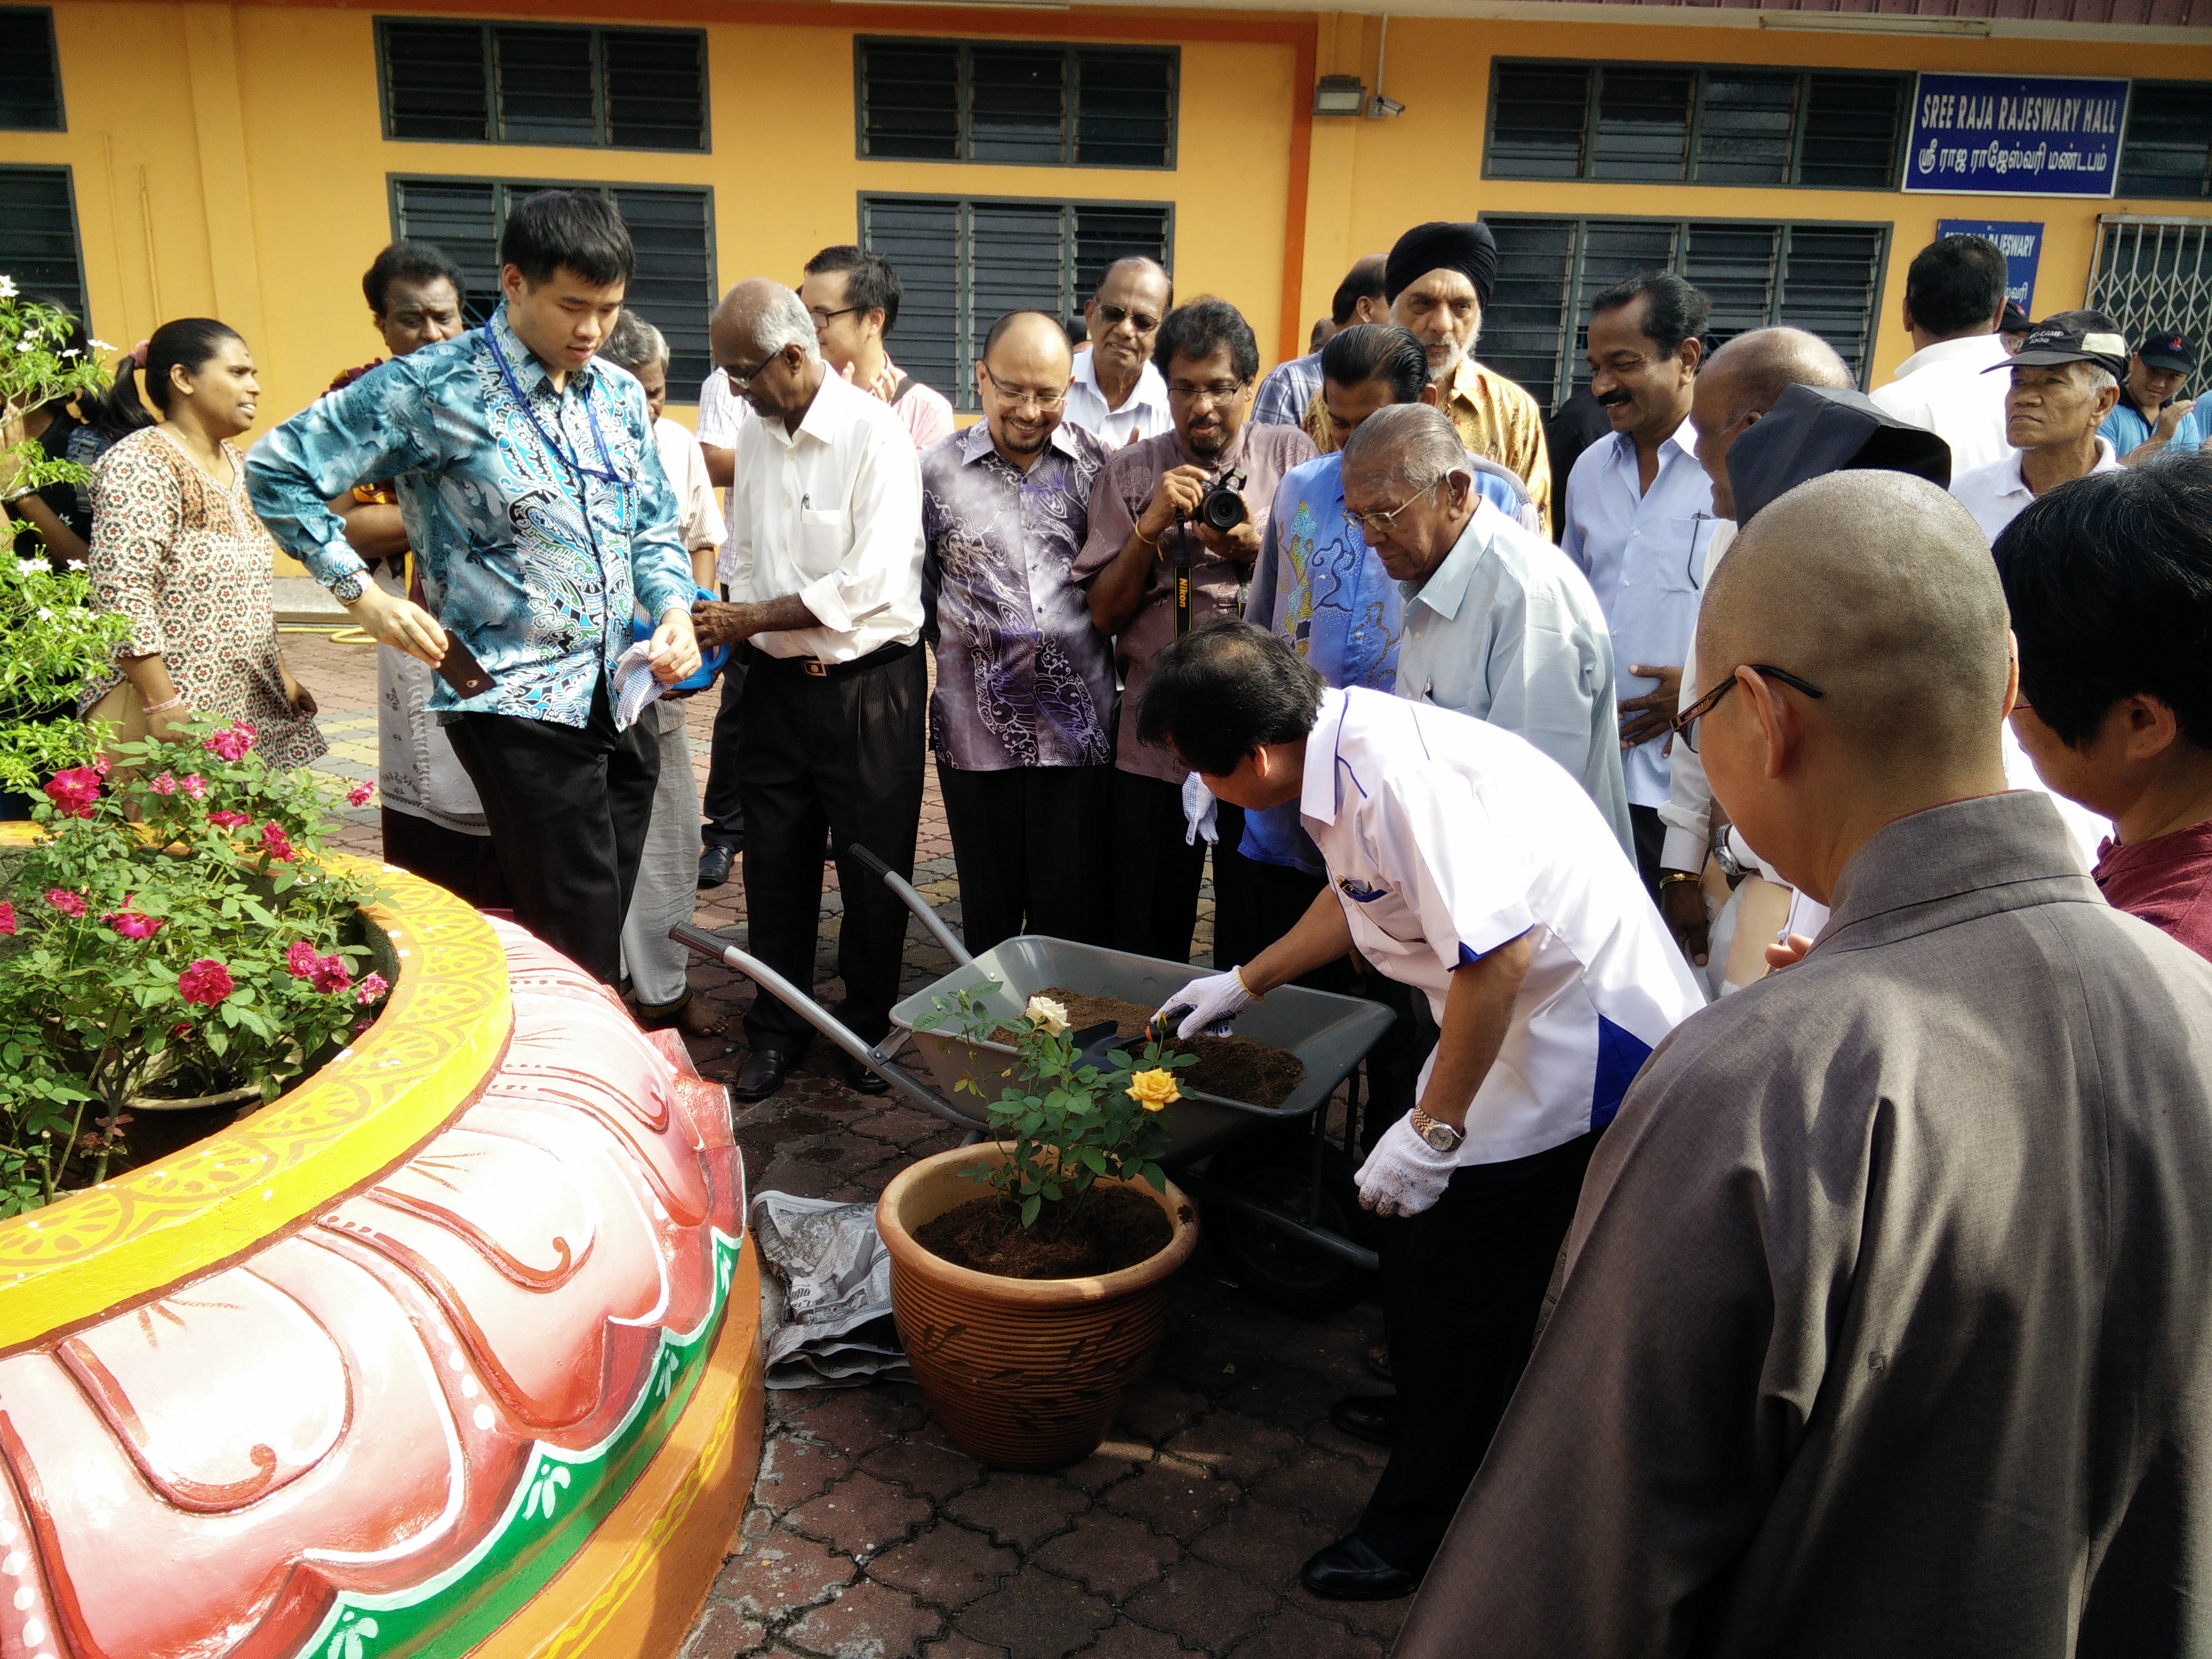 JKMPKA with Minister Tan Sri Joseph Kurup planting Rose Flower Plant at Hindu Temple for WIHW 2105 in Klang.jpg